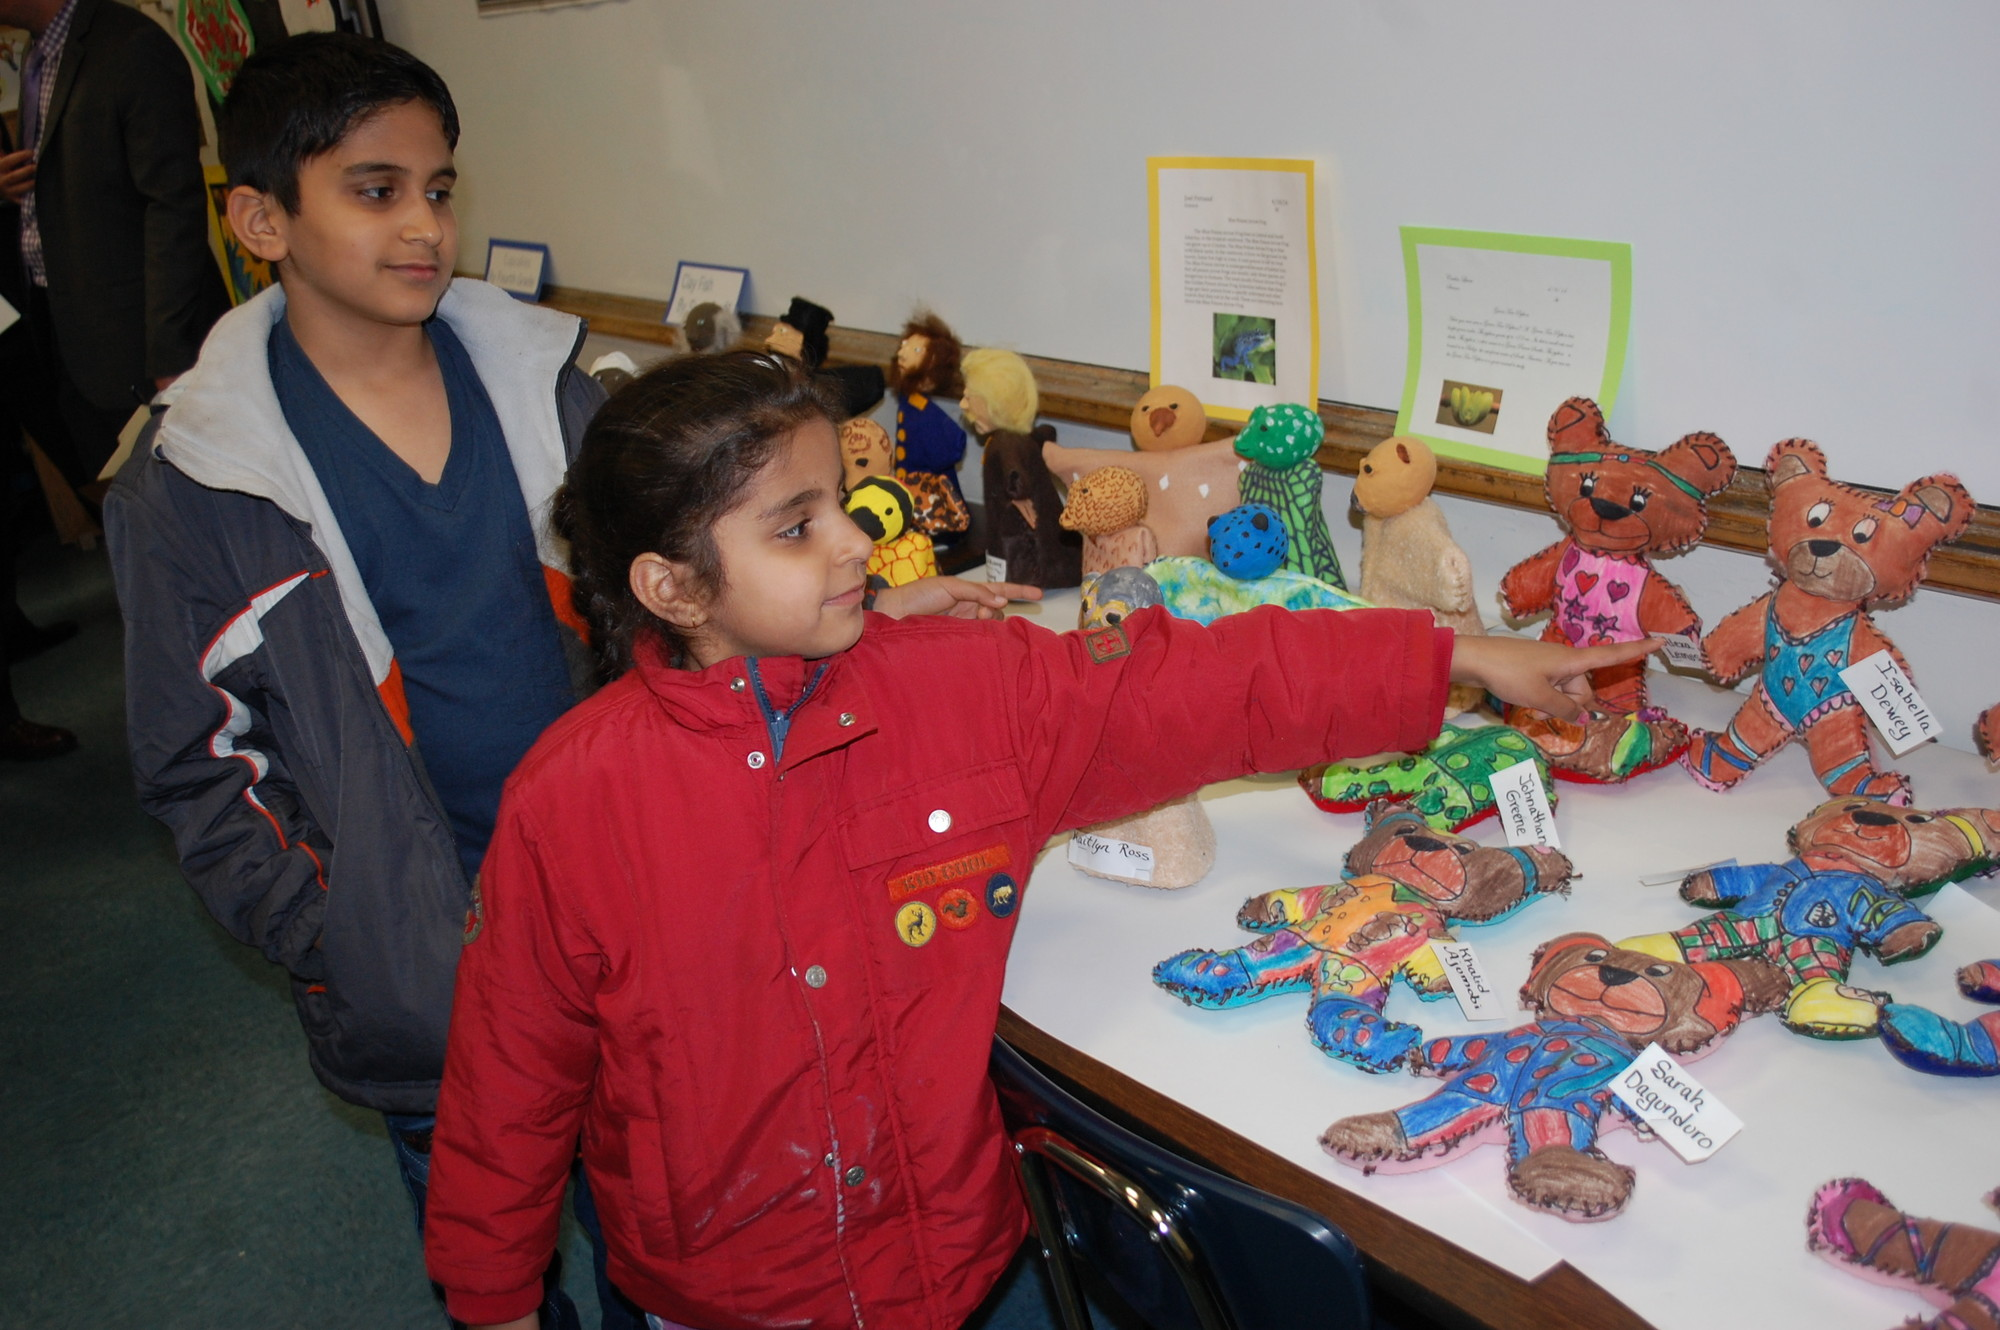 Devansh Sehgal, a fifth-grader at Brooklyn Avenue School, and his sister, Holishka, a first-grader, showed off their three-dimensional art projects.